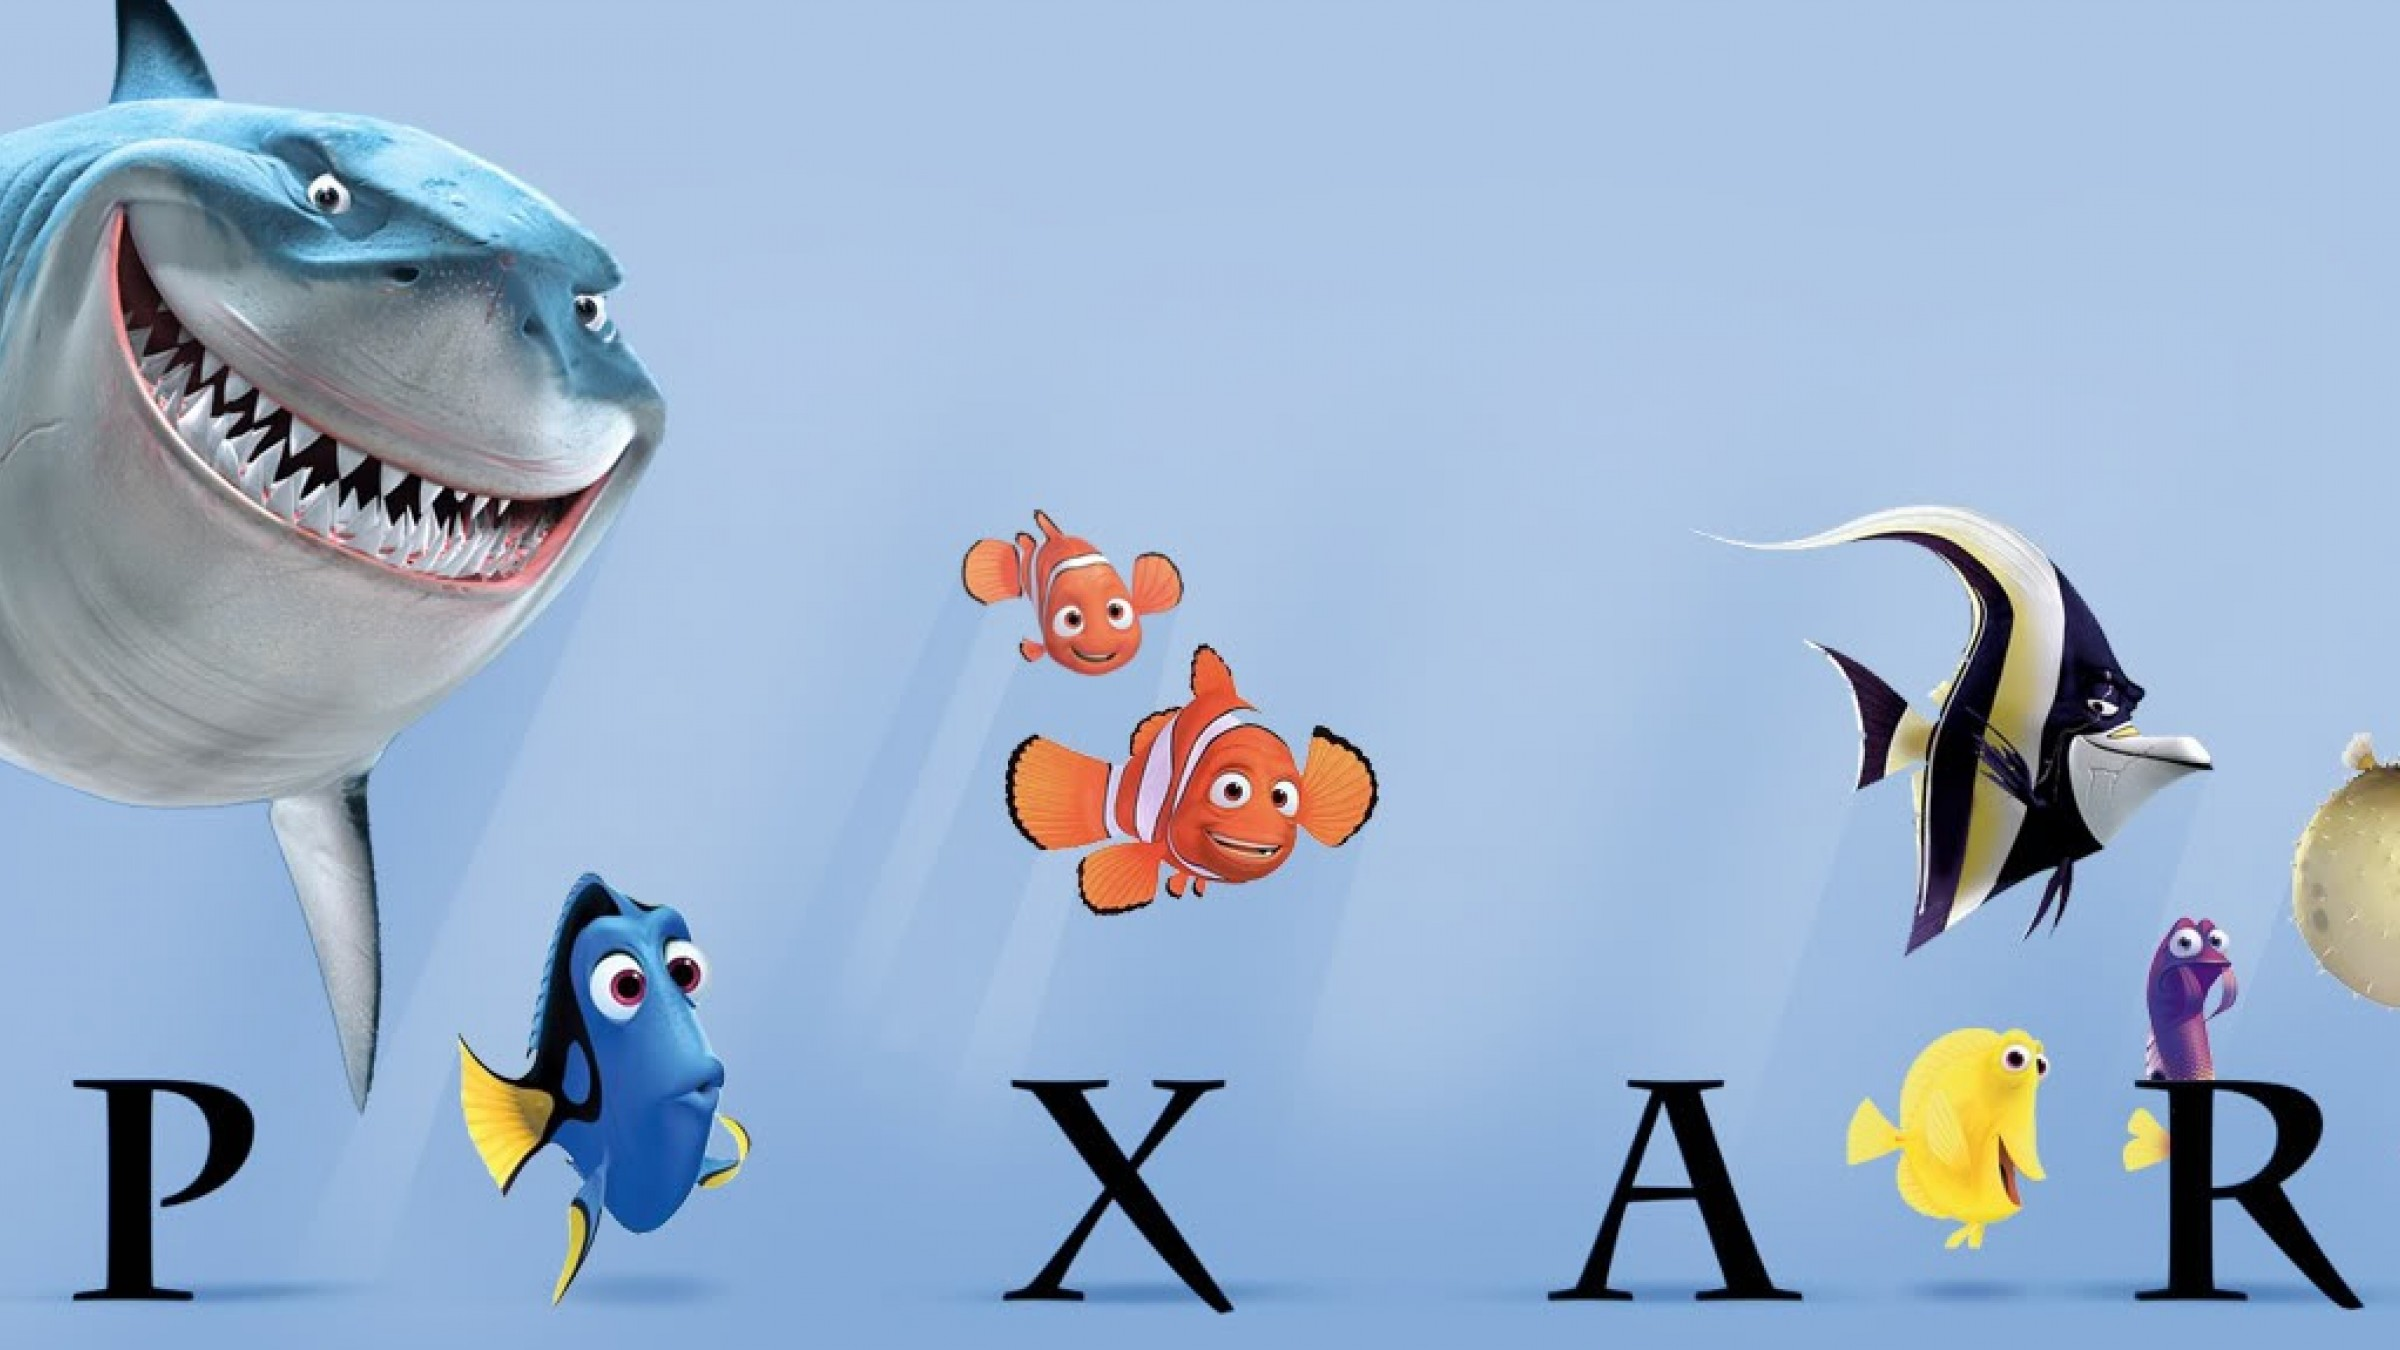 22 Tips On Storytelling From Pixar